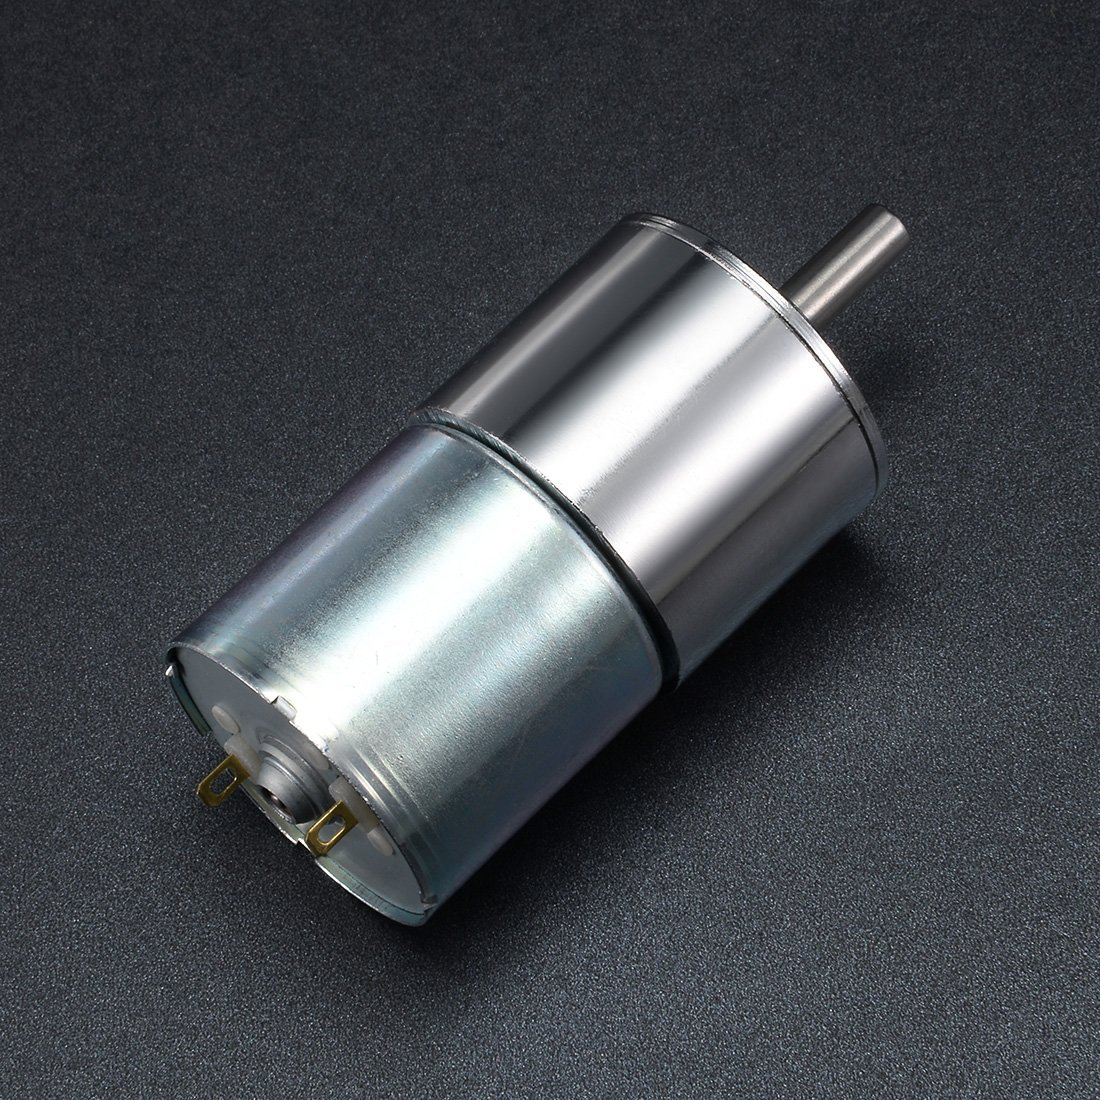 Fimate Electric Micro Speed Reduction Geared Motor Eccentric Output Shaft Gear Motor High Torque DC 12V 10RPM 37mm Diameter Gearbox